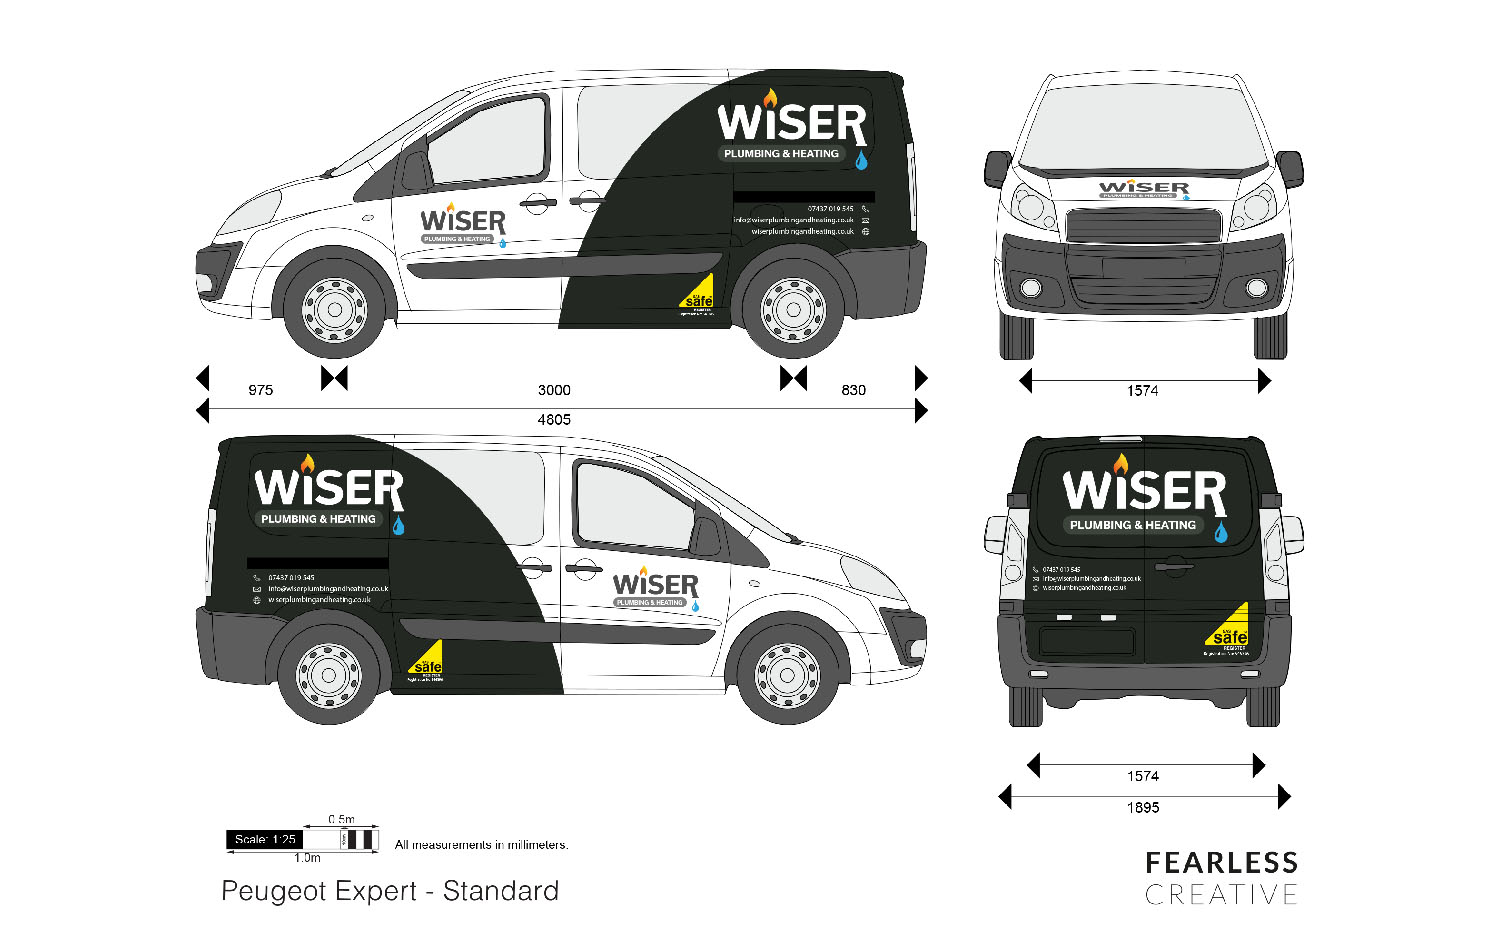 Wiser Plumbing & Heating, Van Vinyls, Vehicle Livery in East Lothian and Portobello designed and supplied by Fearless Creative